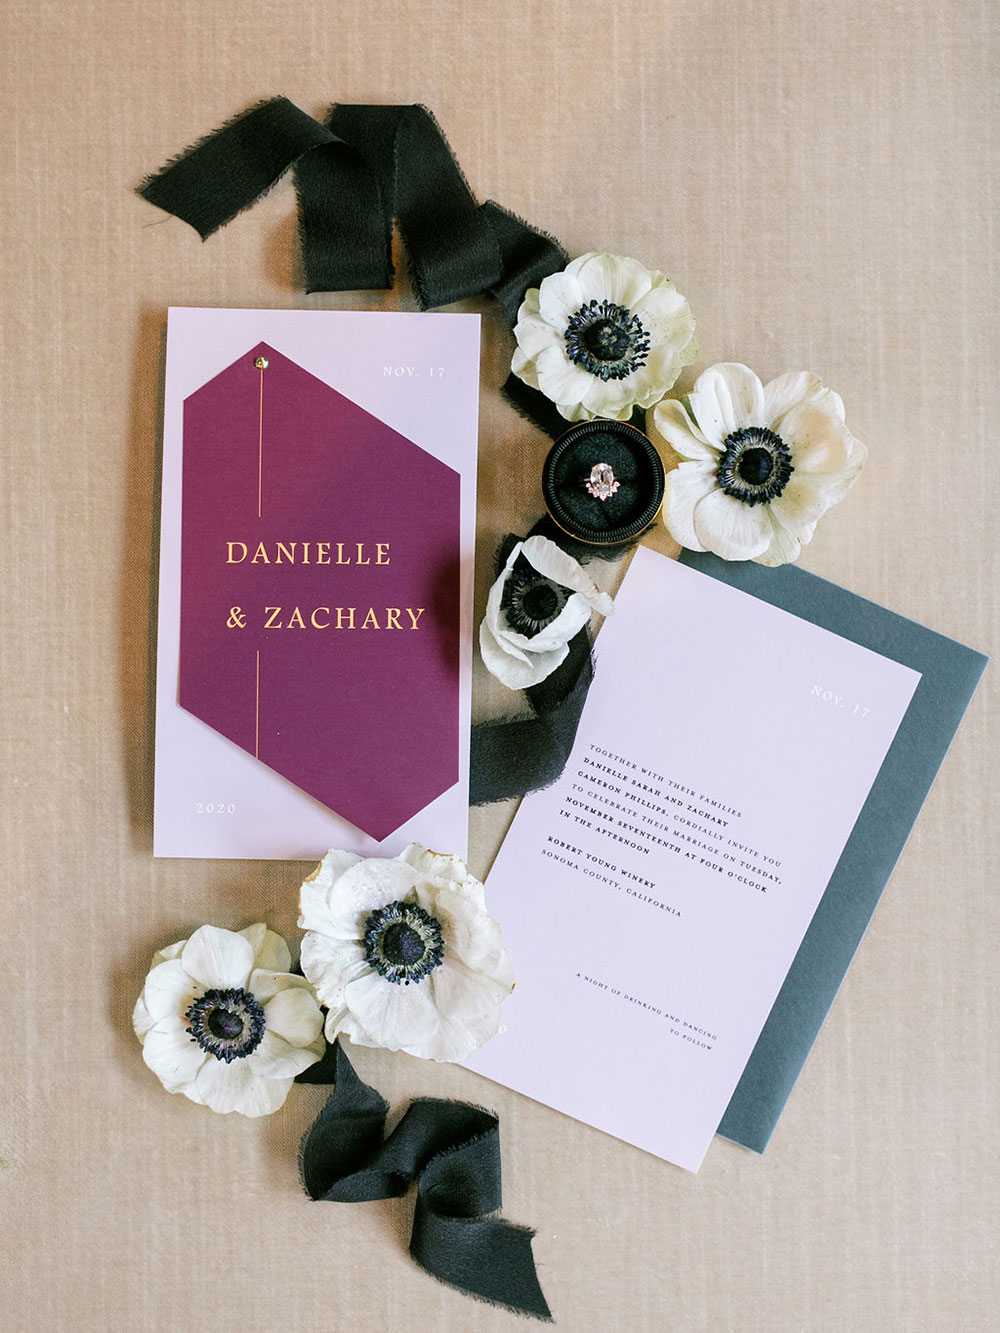 The wedding stationery was done in neutrals, green and purple, with gold printing